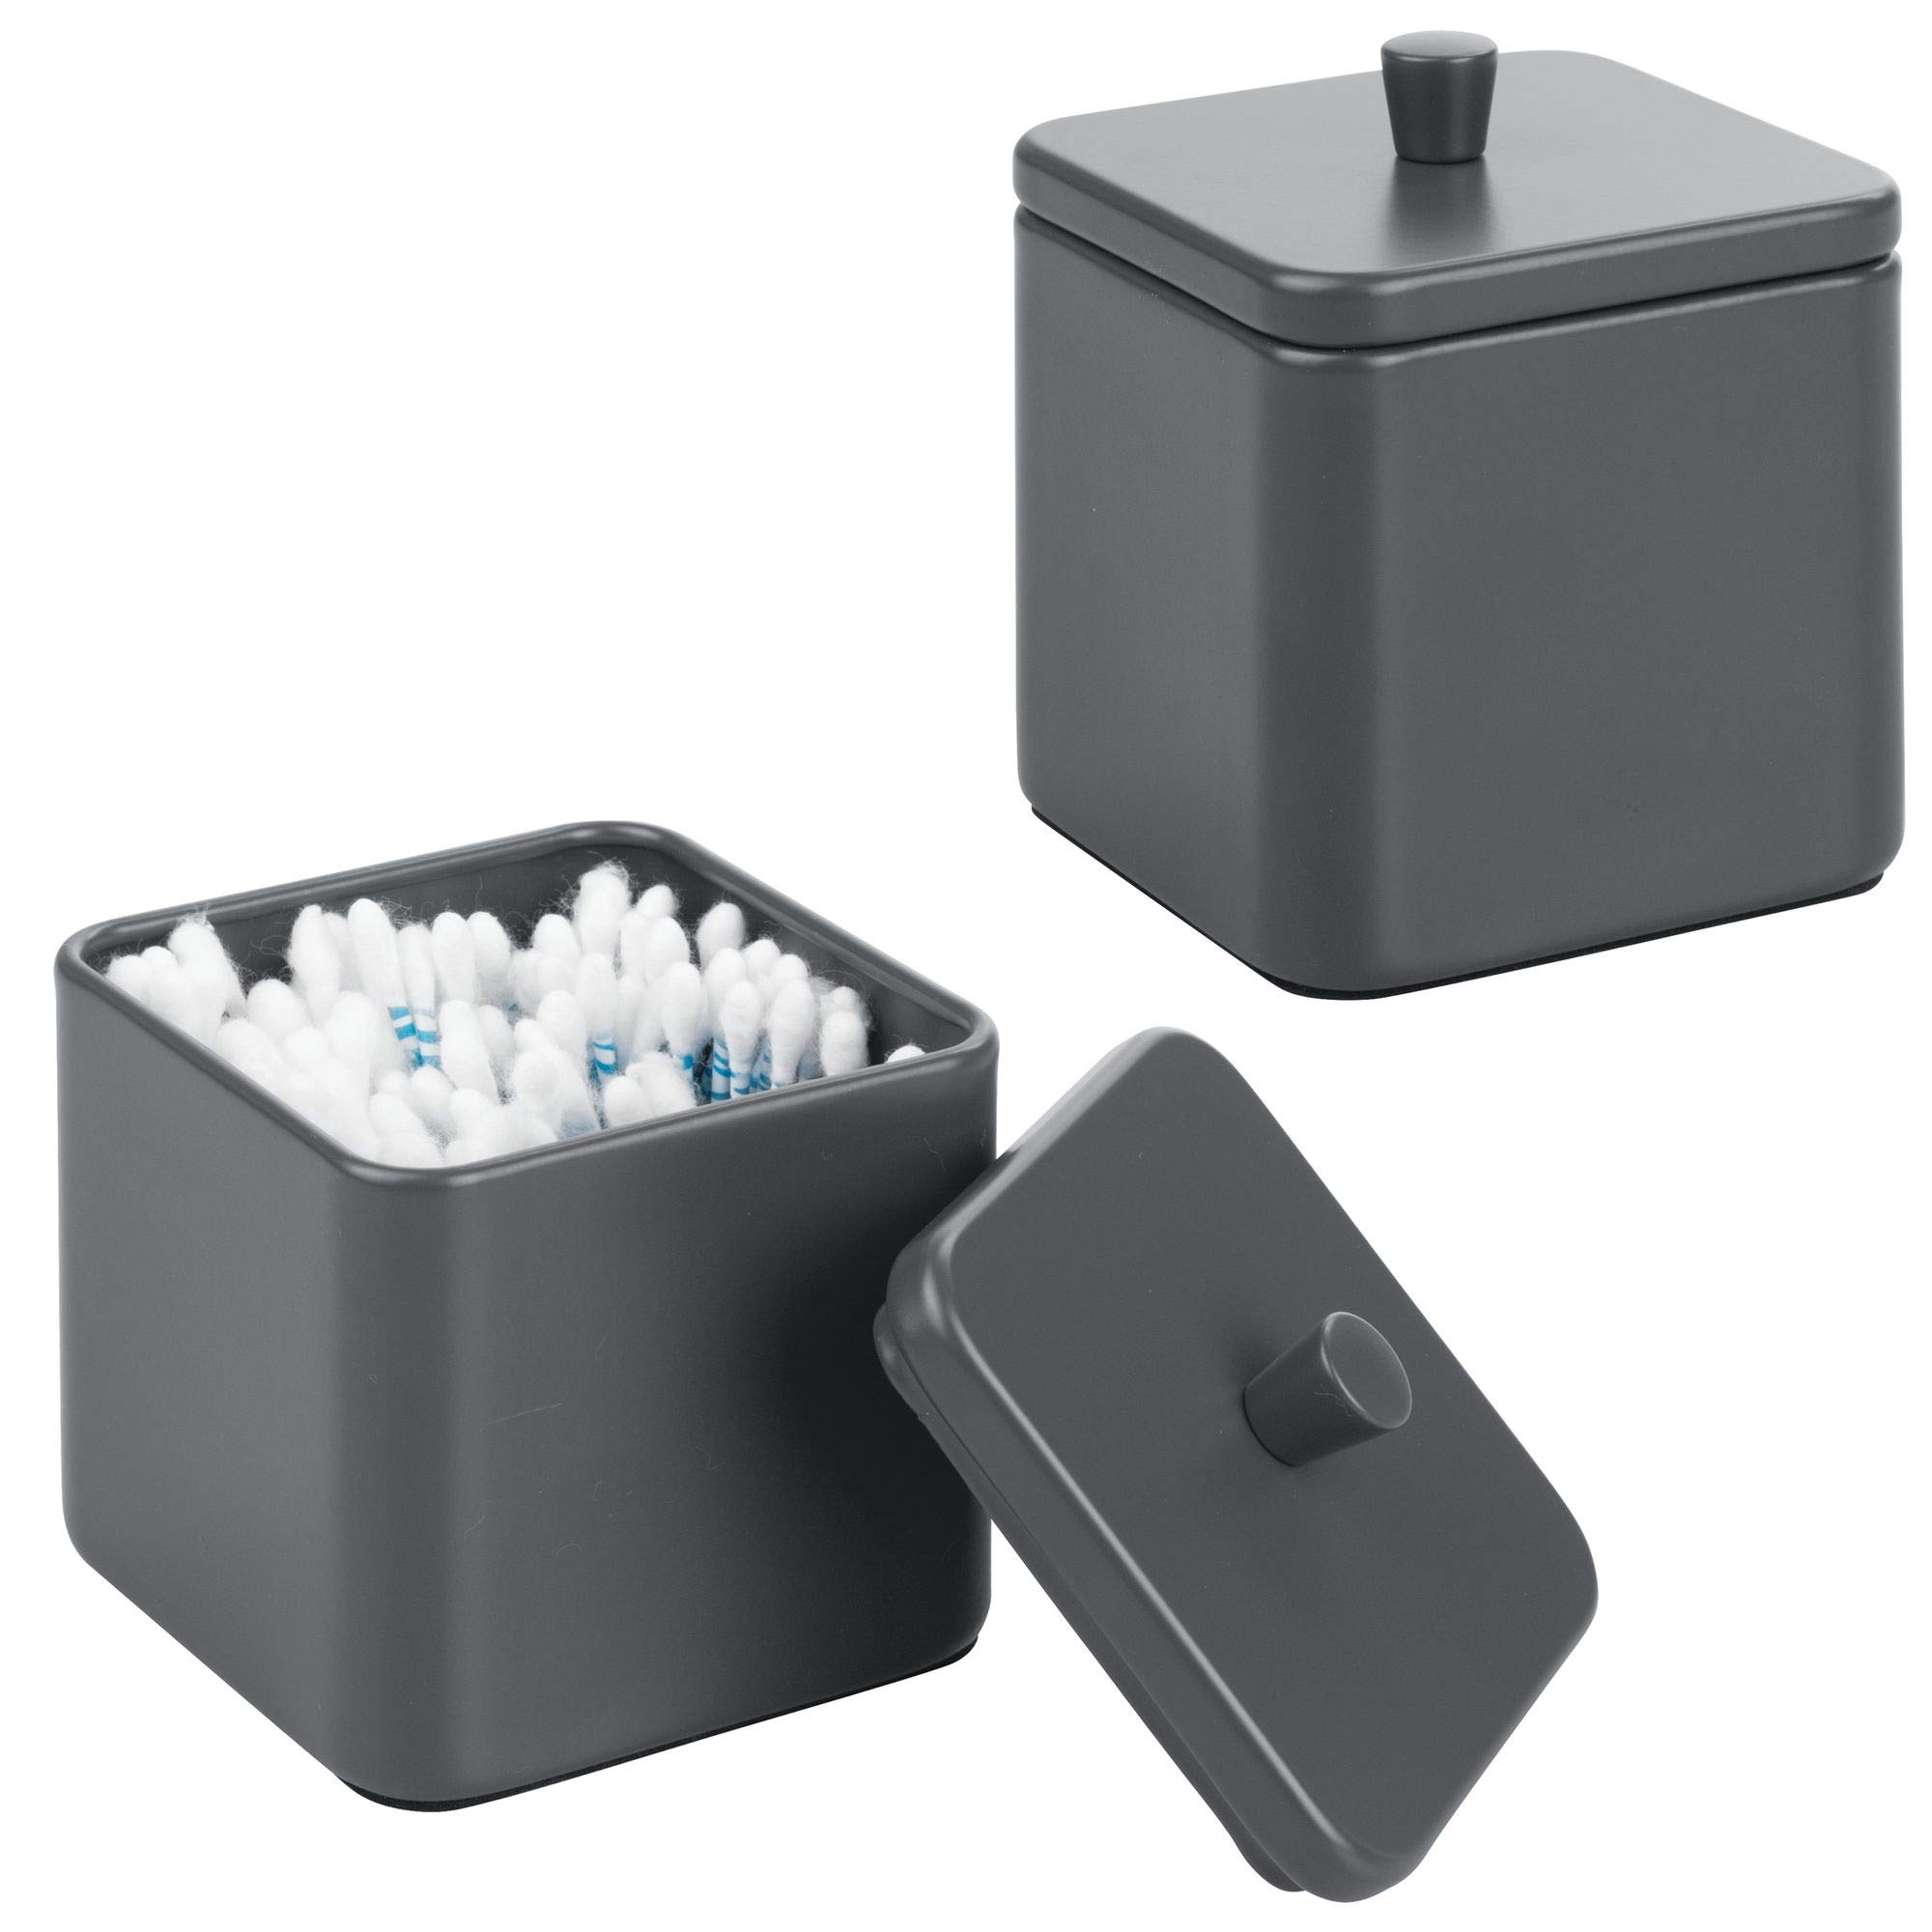 mDesign Bathroom Vanity Countertop Storage Organizer Canister Jars for Cotton Swabs, Rounds, Balls, Makeup Sponges, Beauty Blenders, Bath Salts - Pack of 2, Square, Matte Finish, Slate Gray